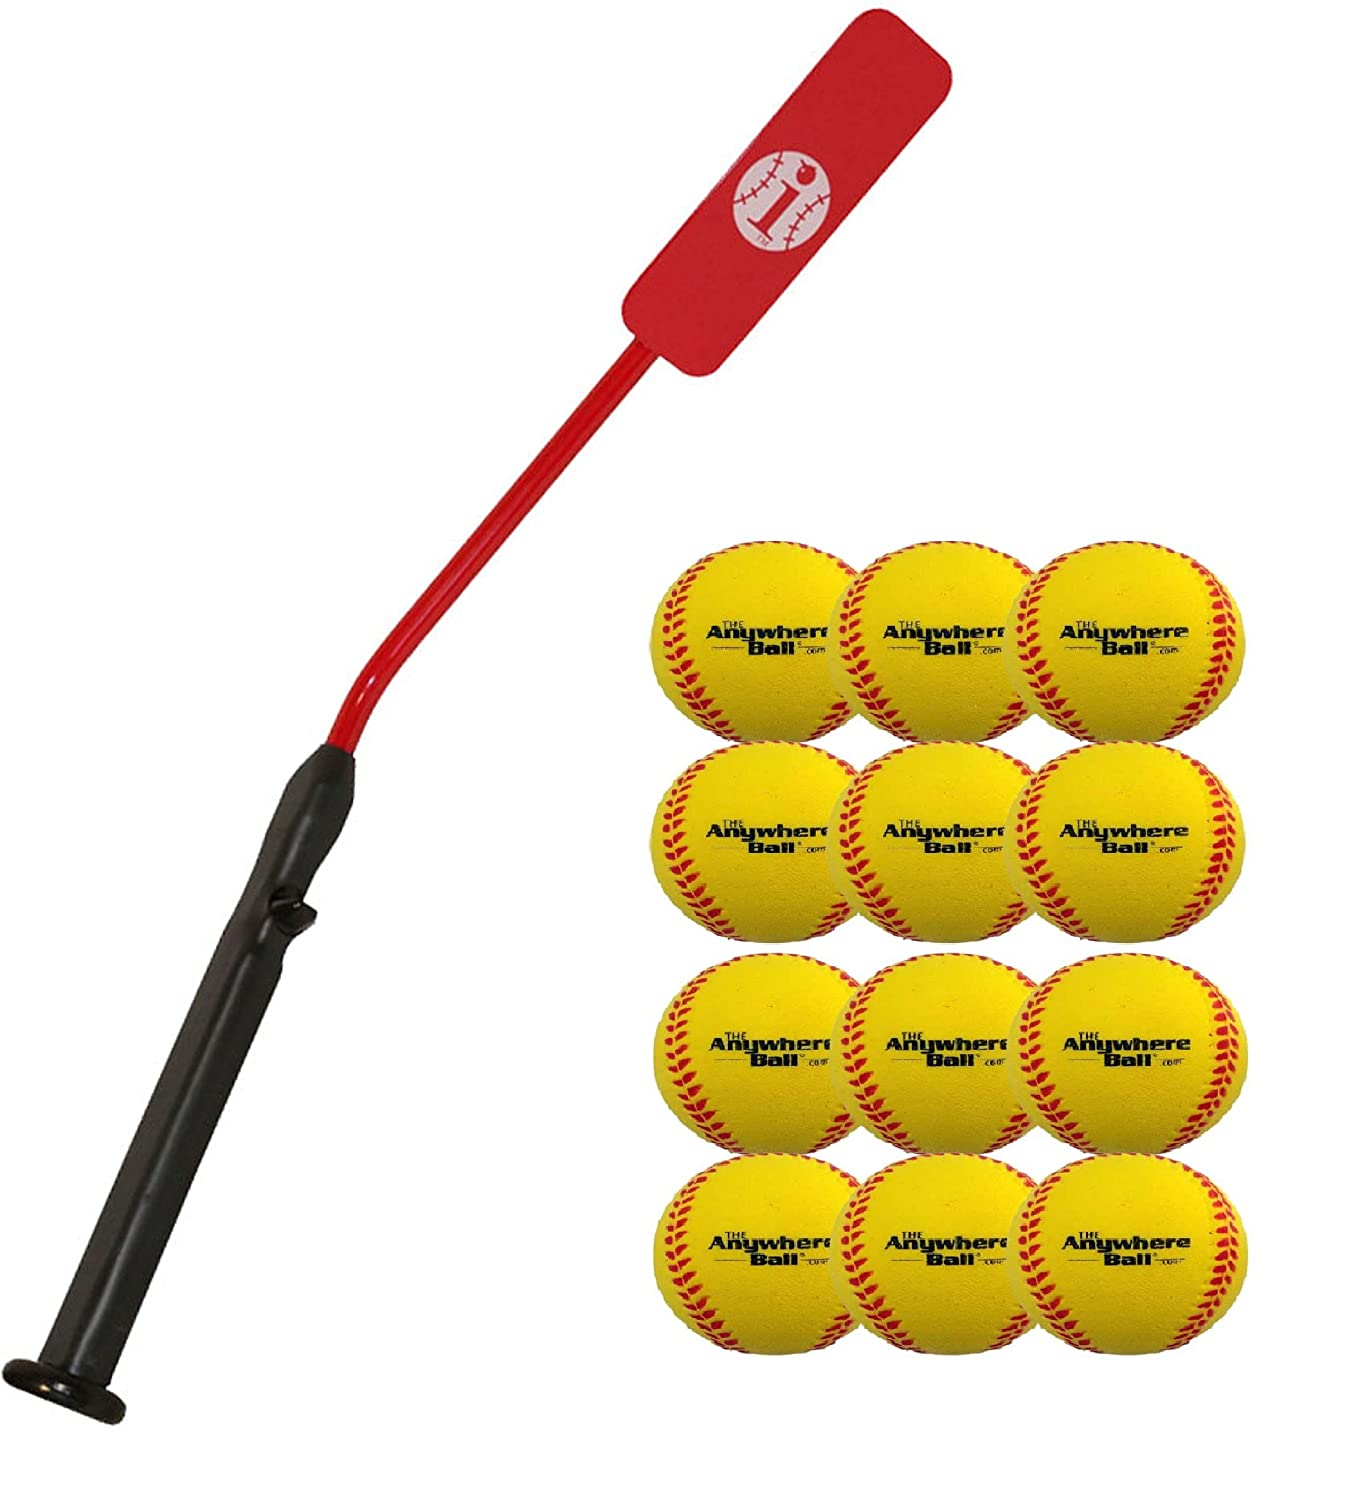 Ages 12 and Under Insider Bat Size 6 /& Anywhere Ball Complete Baseball Softball Batting Practice Kit